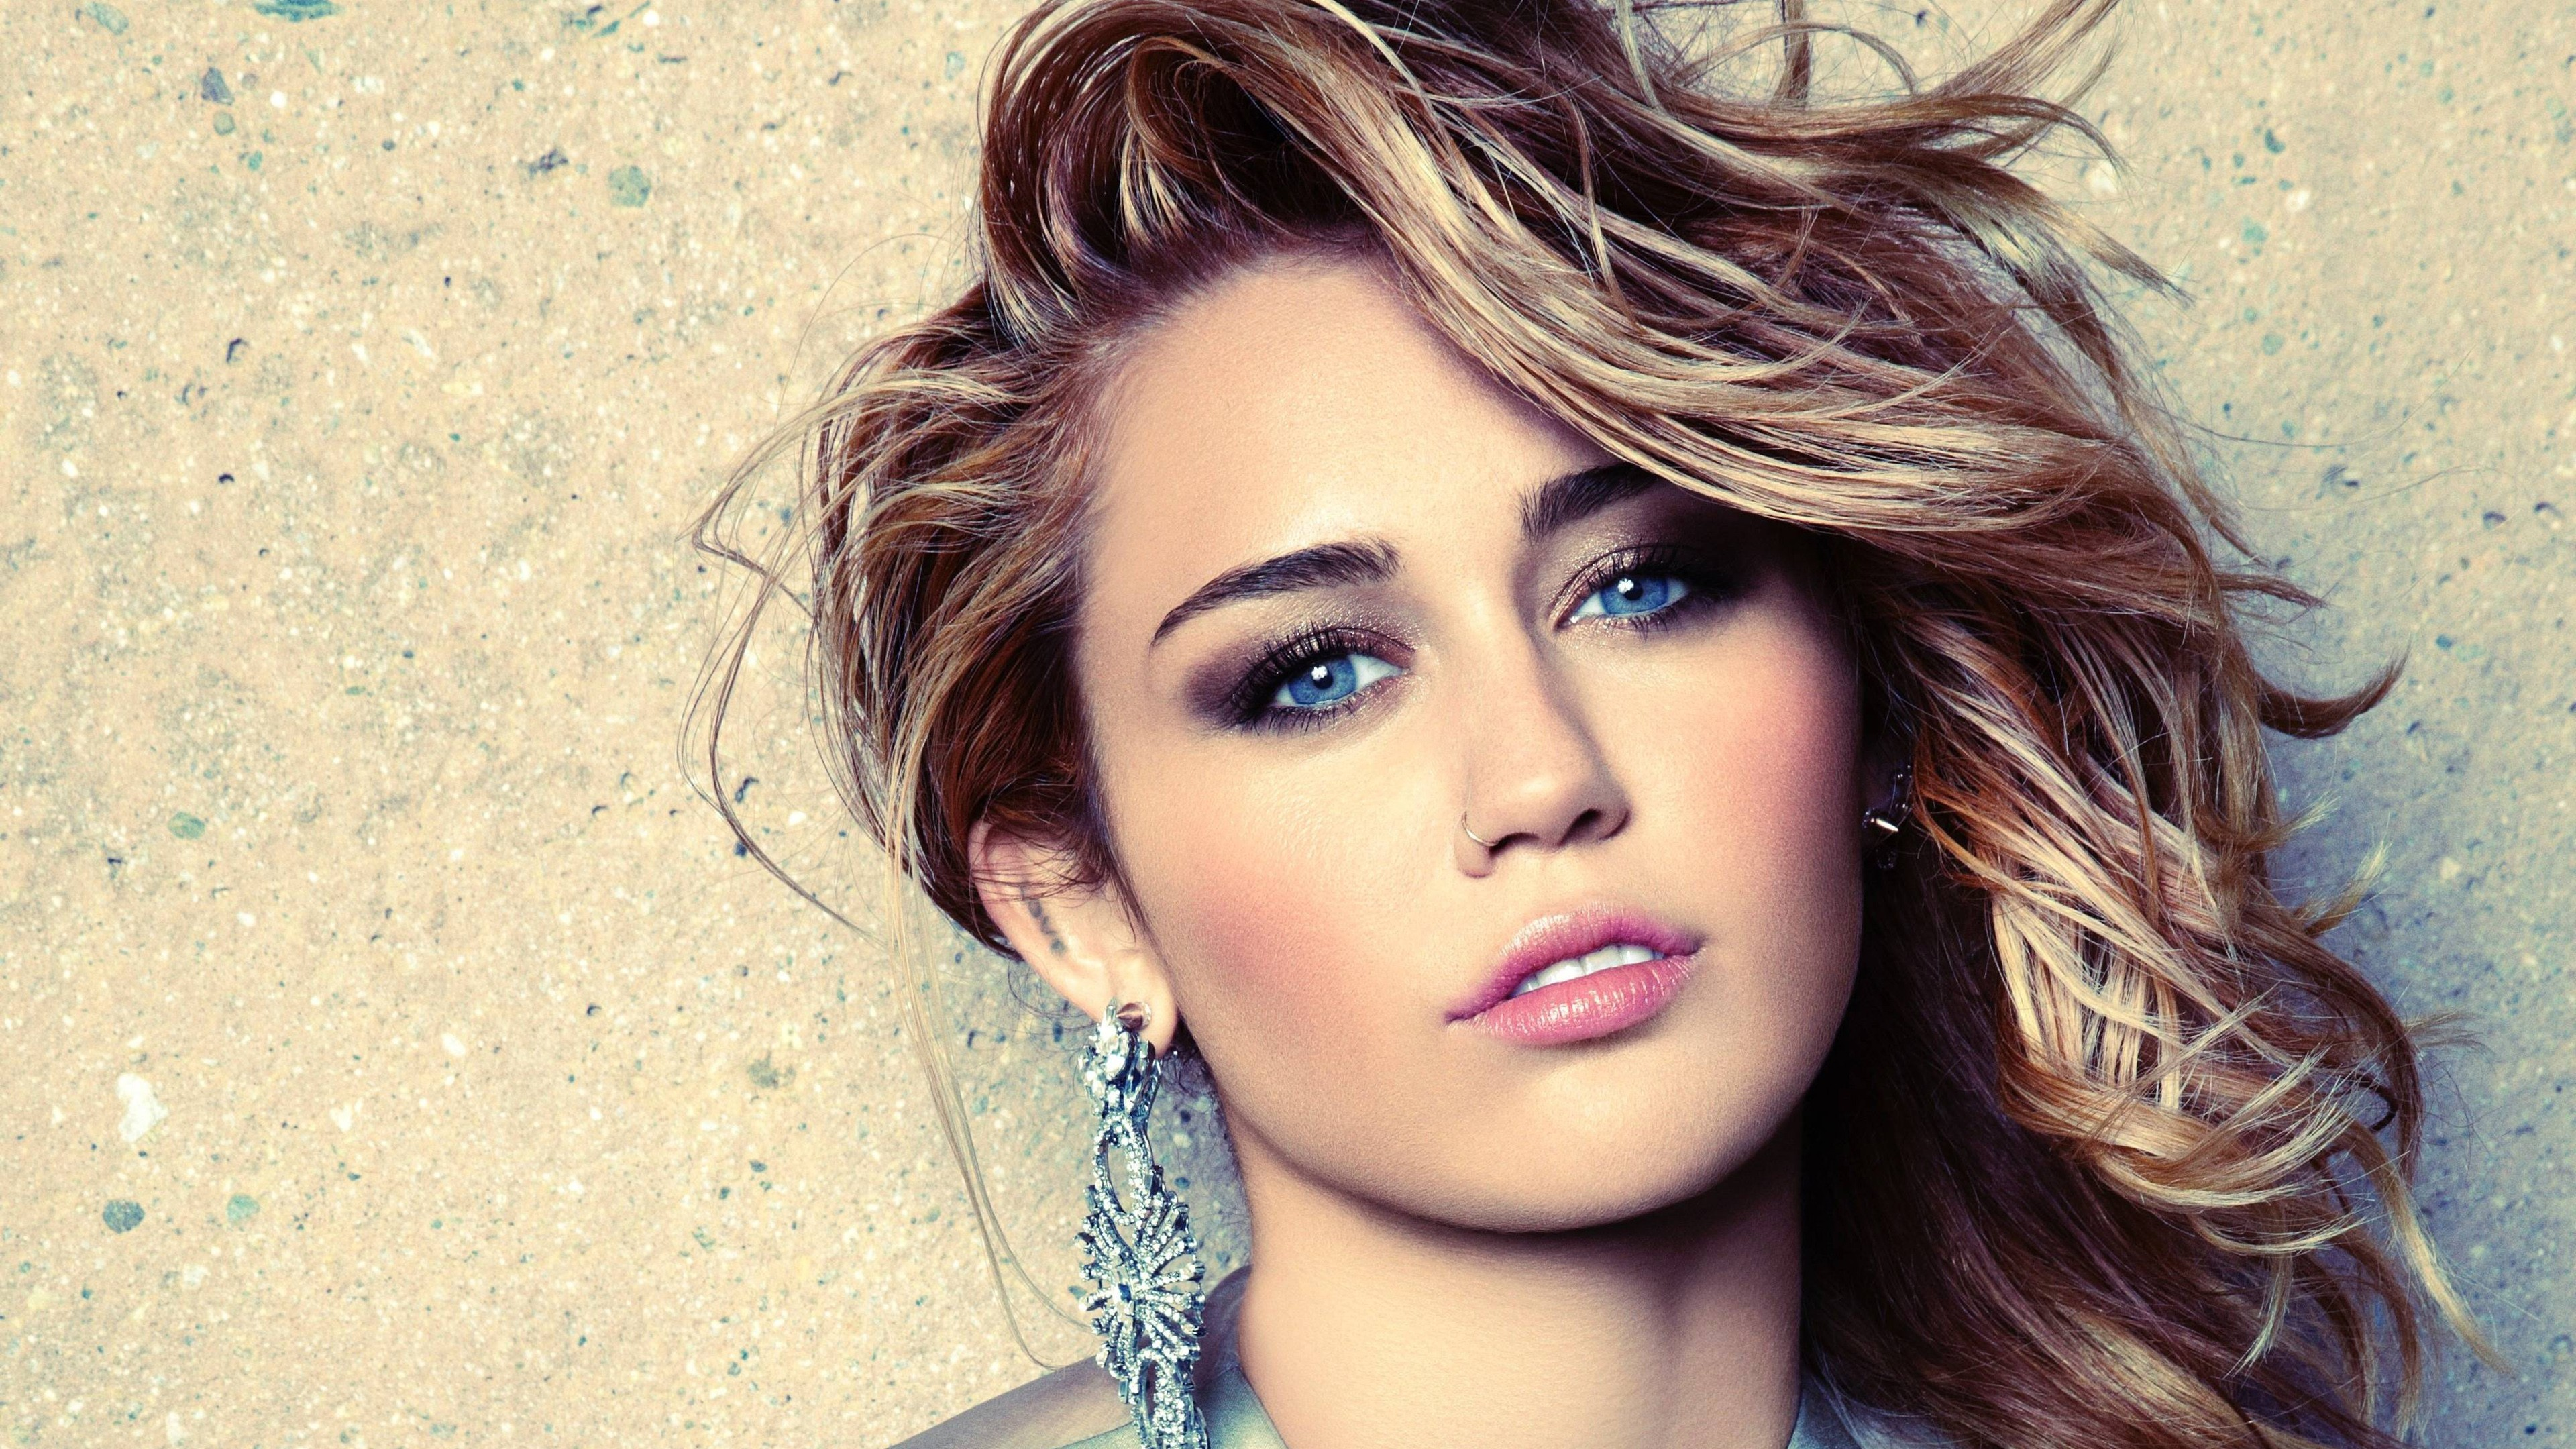 Miley Cyrus Photo 4K Wallpaper HD